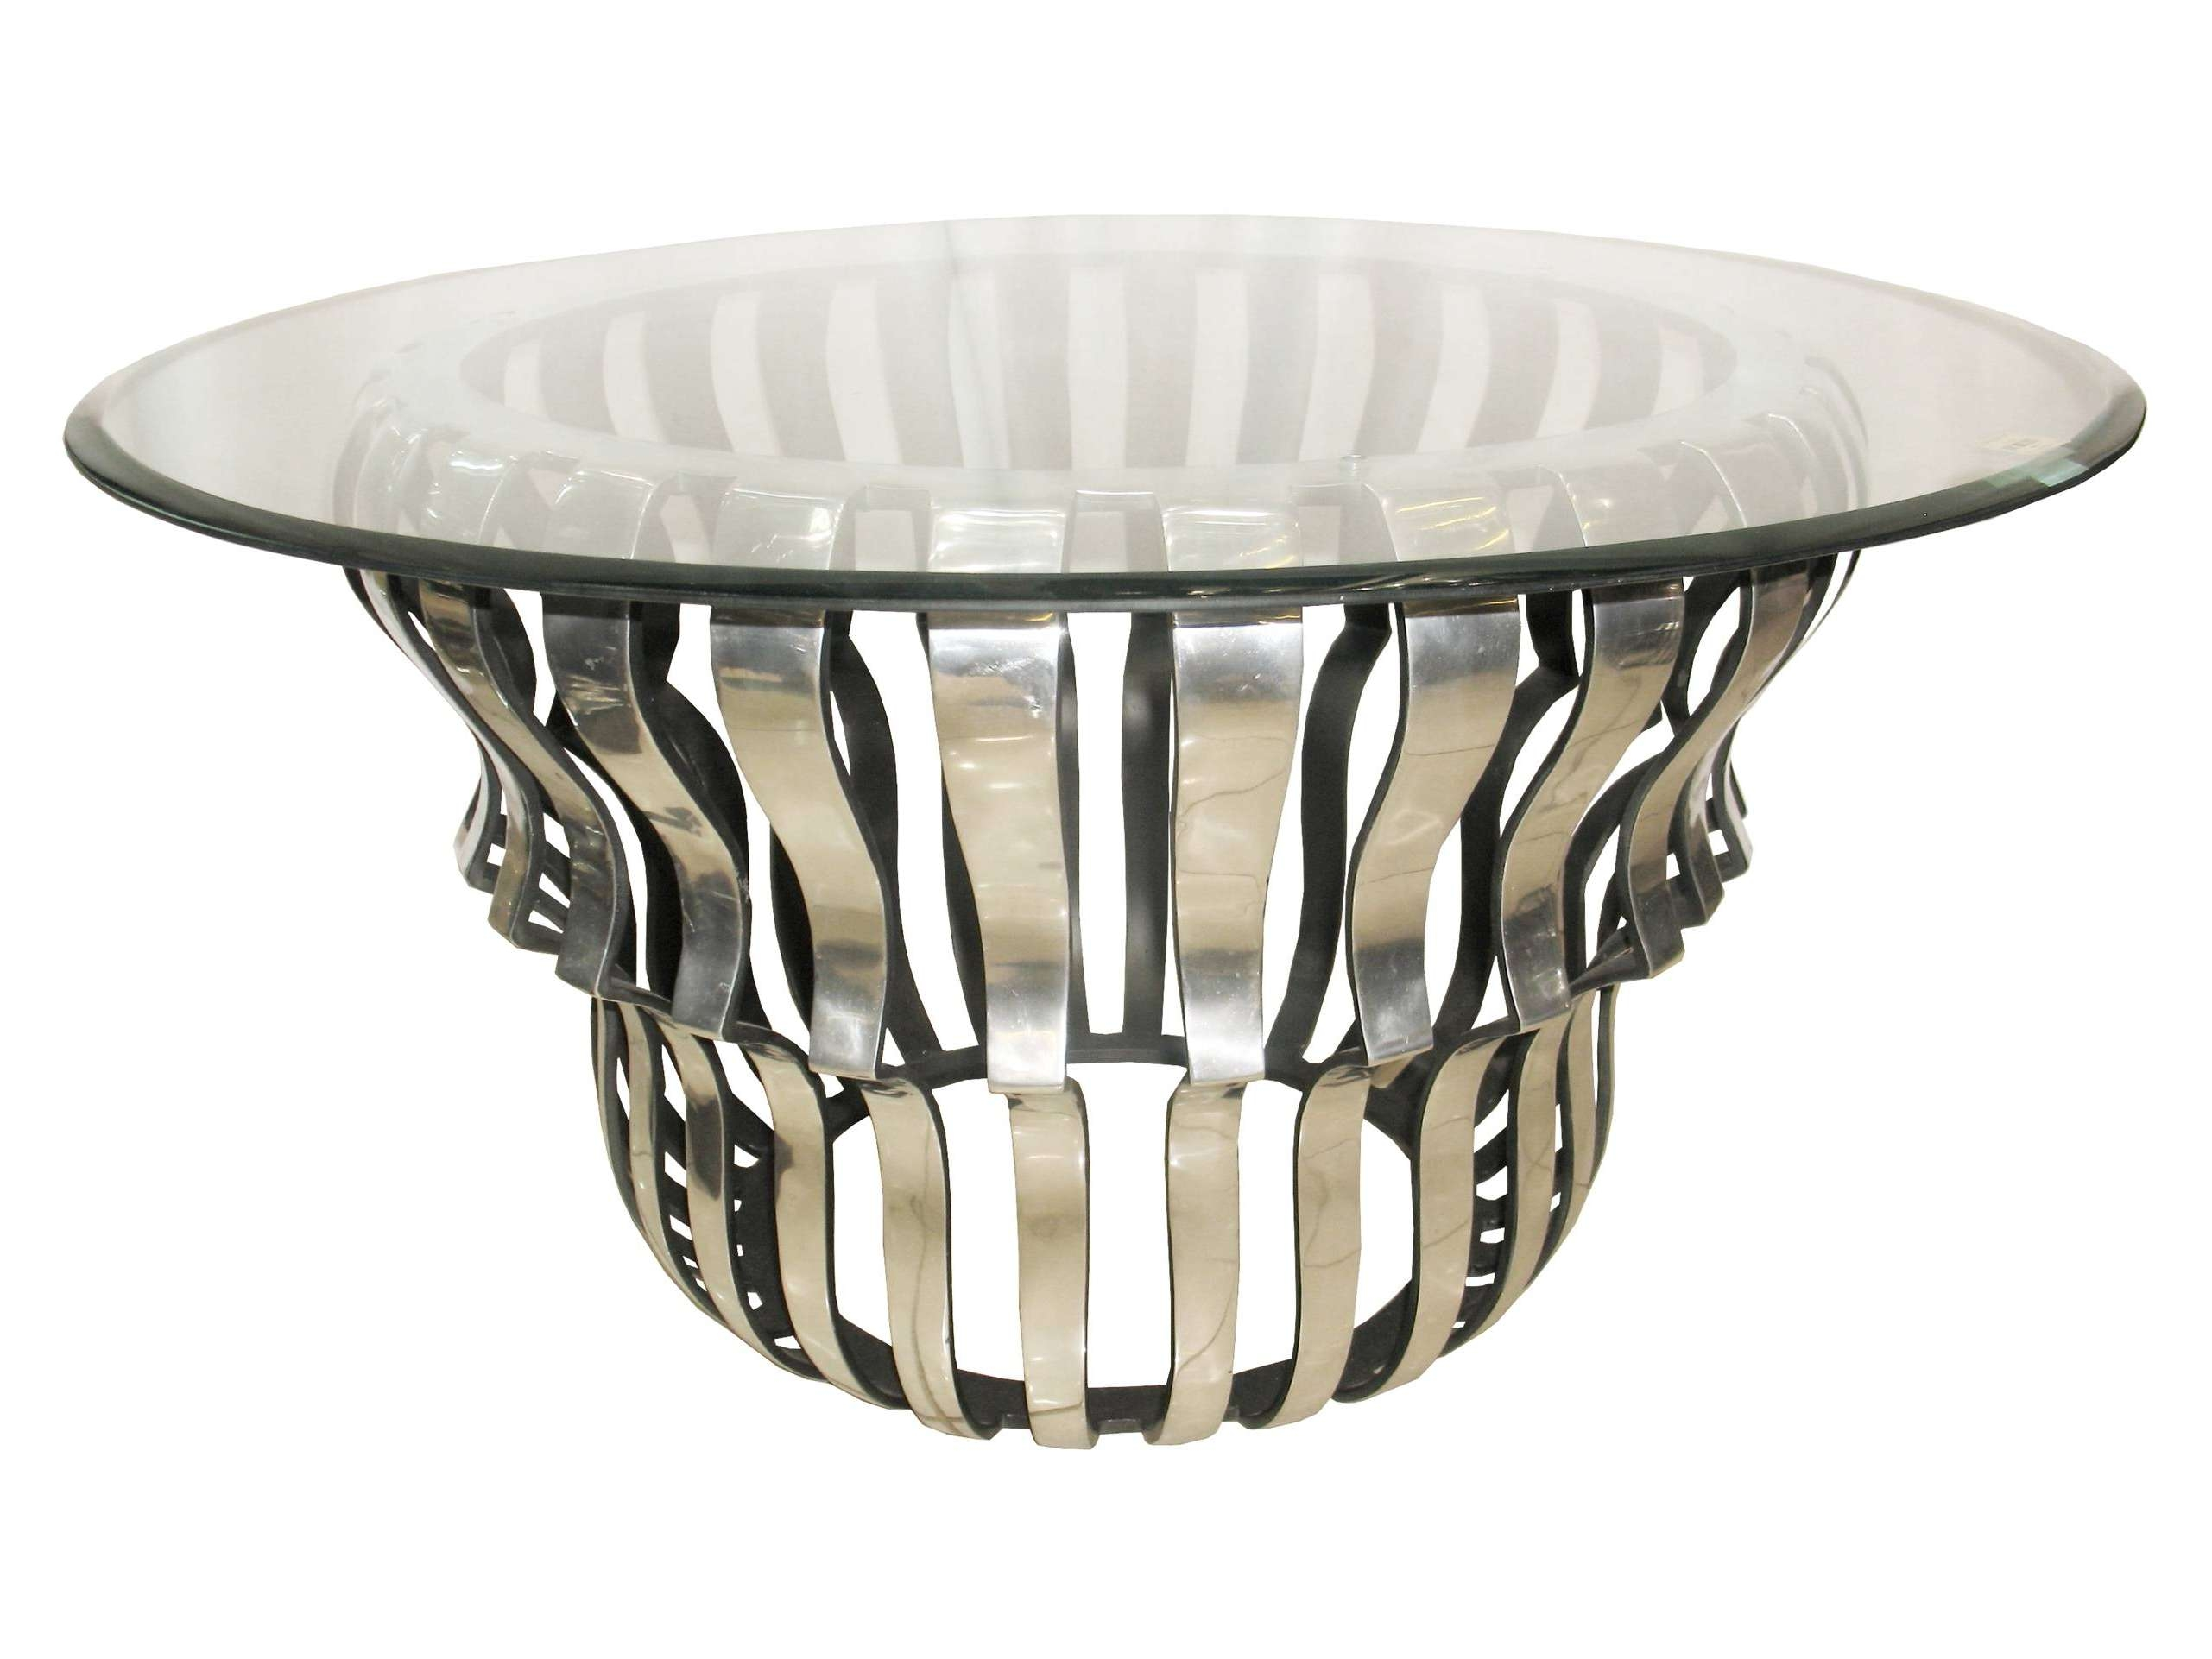 Wowpieces Regarding Most Current Aluminium Coffee Tables (View 20 of 20)